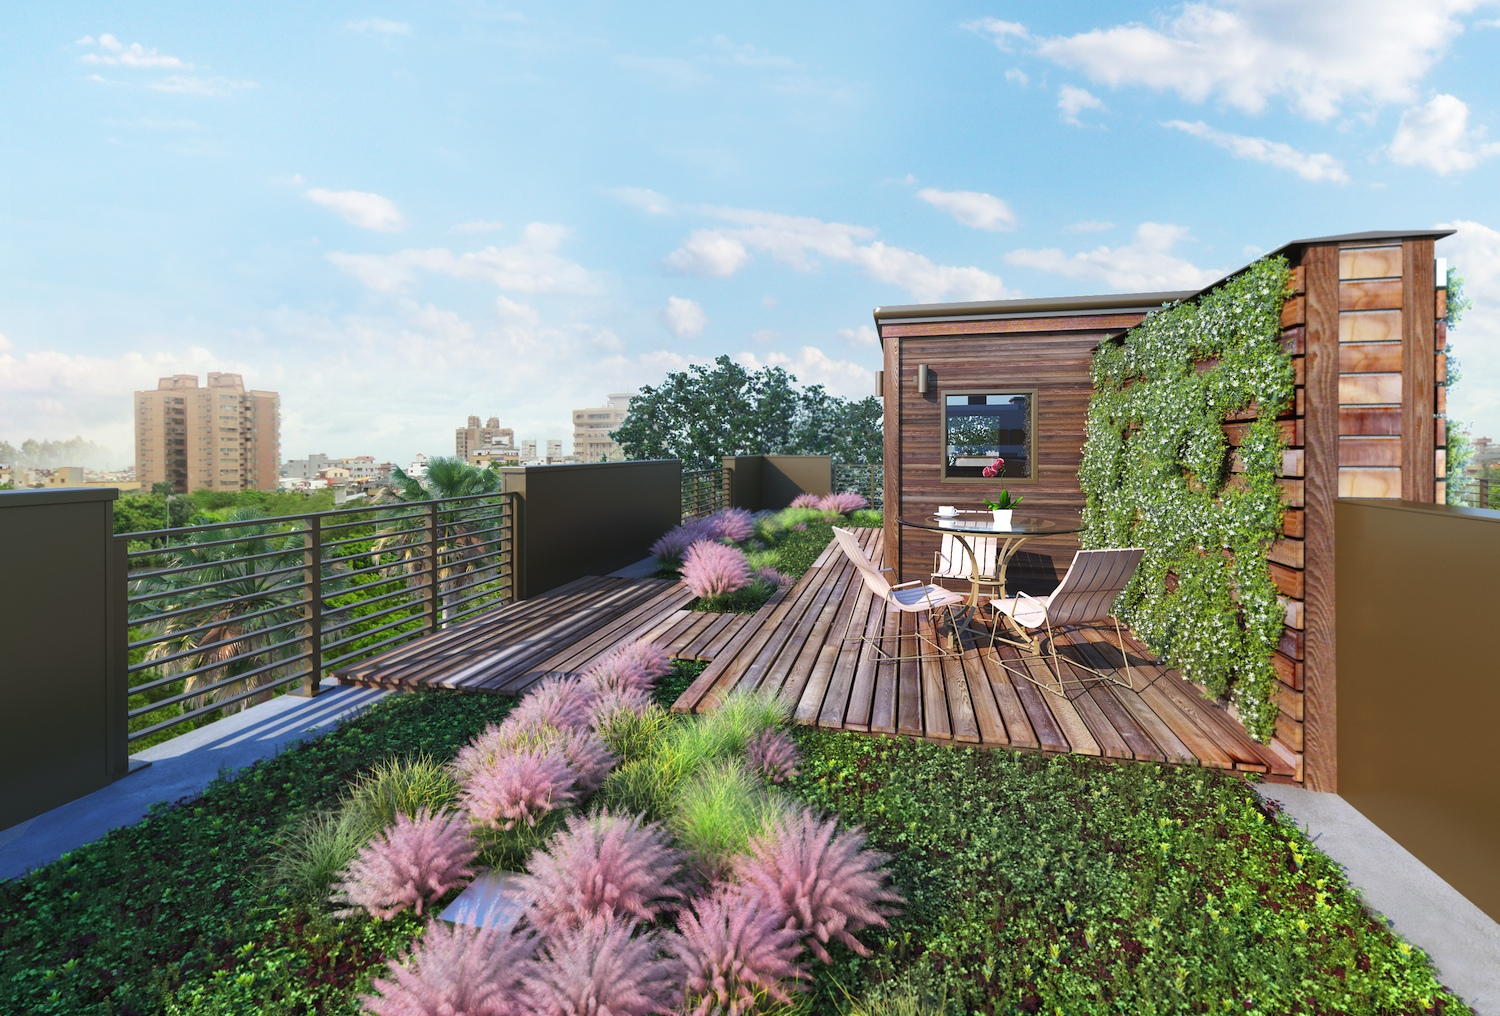 Aloha Construction Discusses Green Roofs